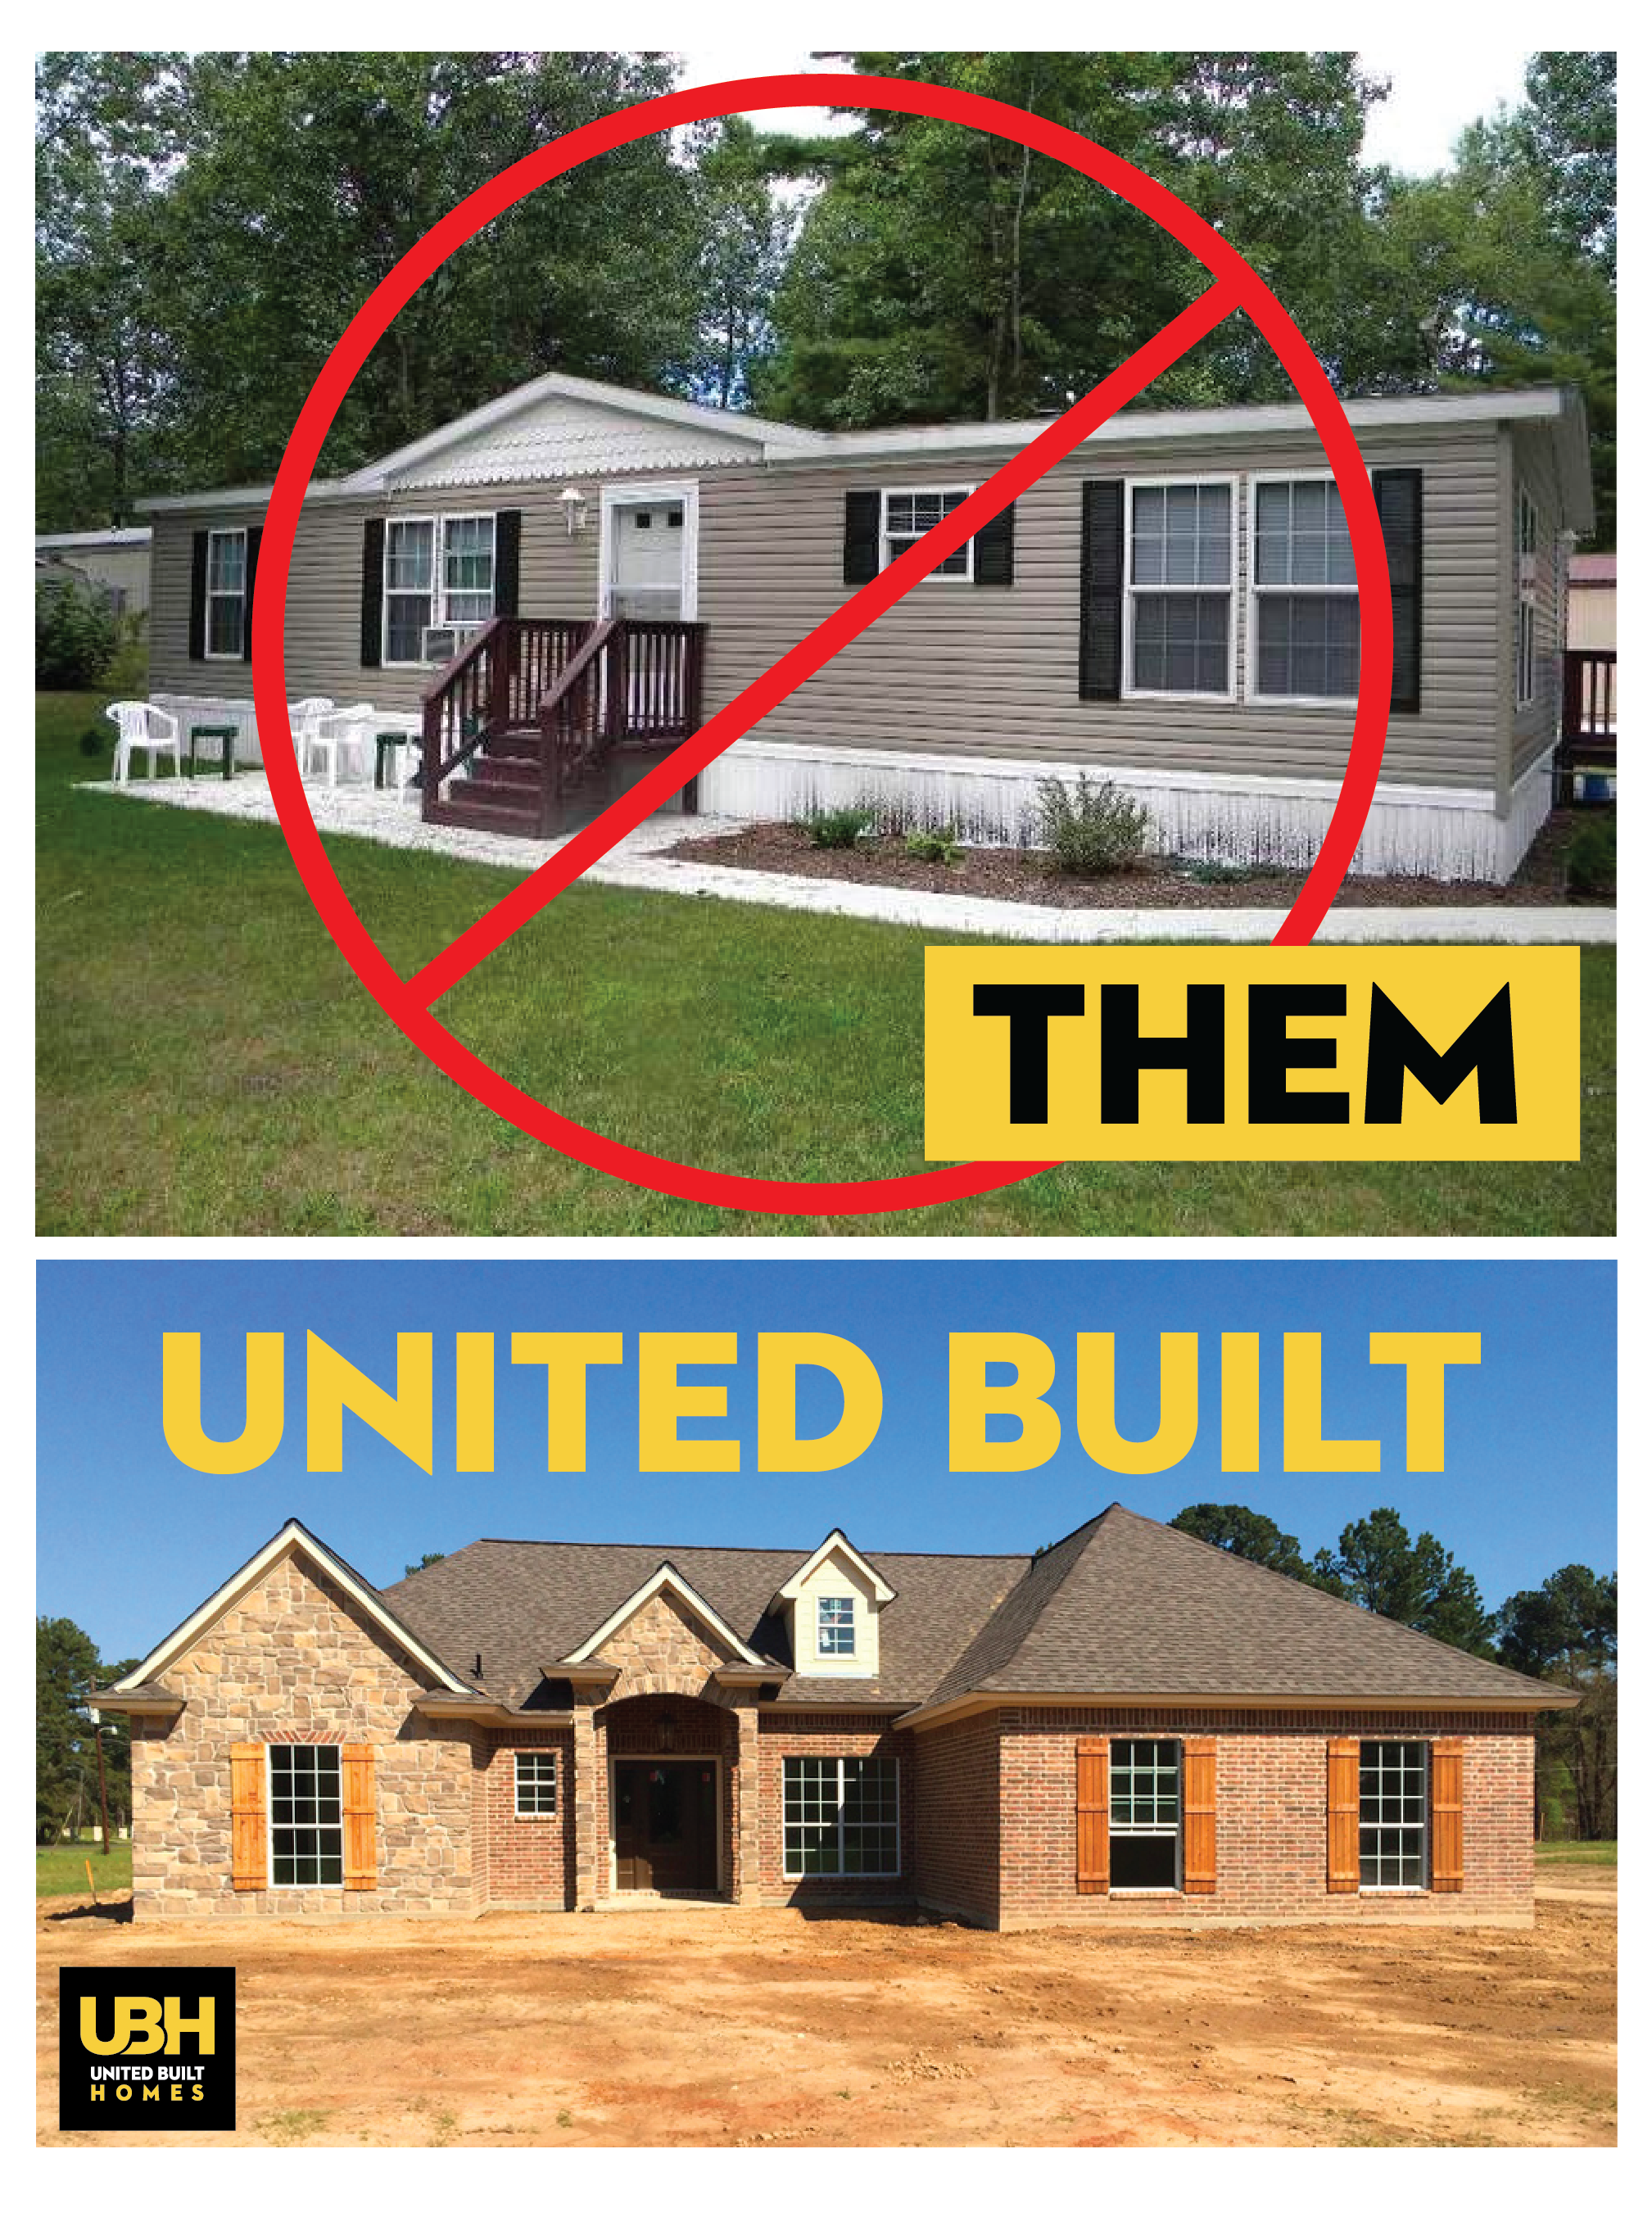 We Are Frequently Asked If We Sell Manufactured Homes At United Built Homes We Only Build Stick Built Homes A Prefabricated Houses Custom Homes Modular Homes